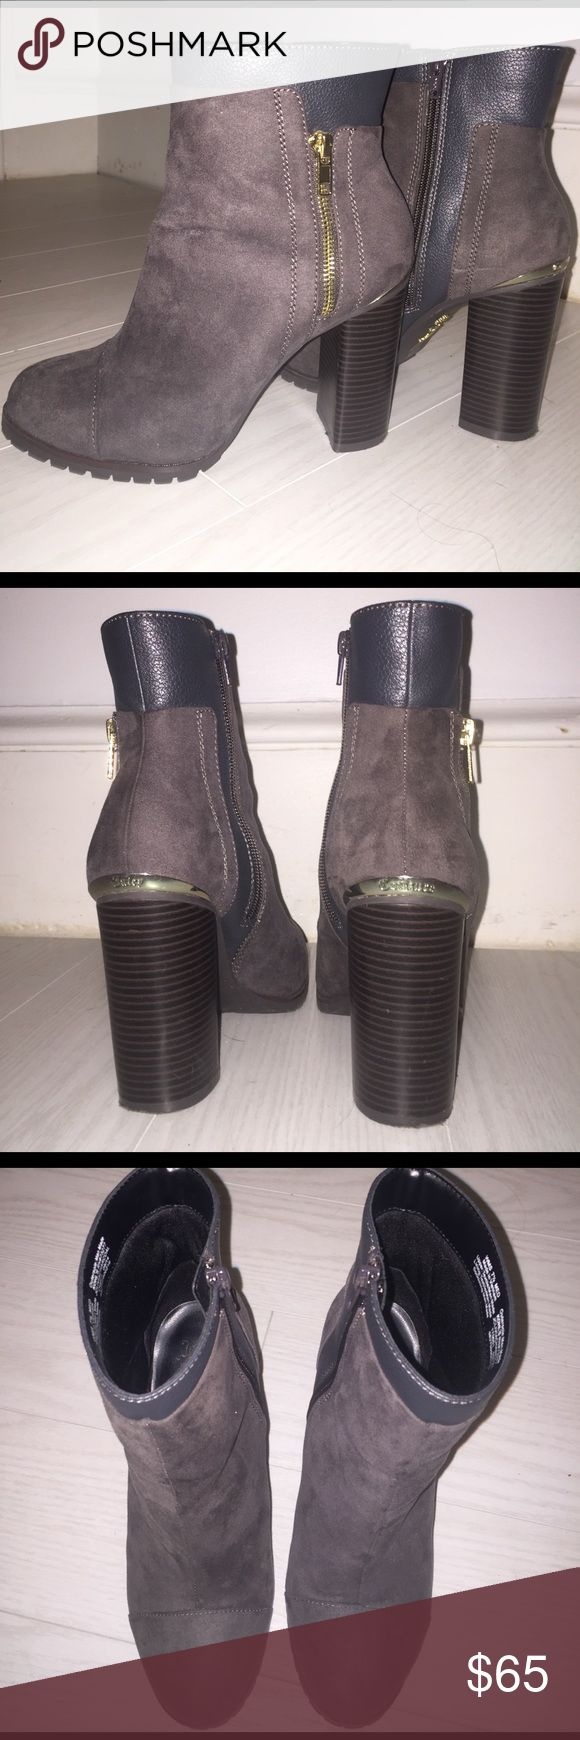 Juicy Couture heel booties Excellent condition.  Metal detail at back and false zipper. Very cute and barely worn. Juicy Couture Shoes Ankle Boots & Booties